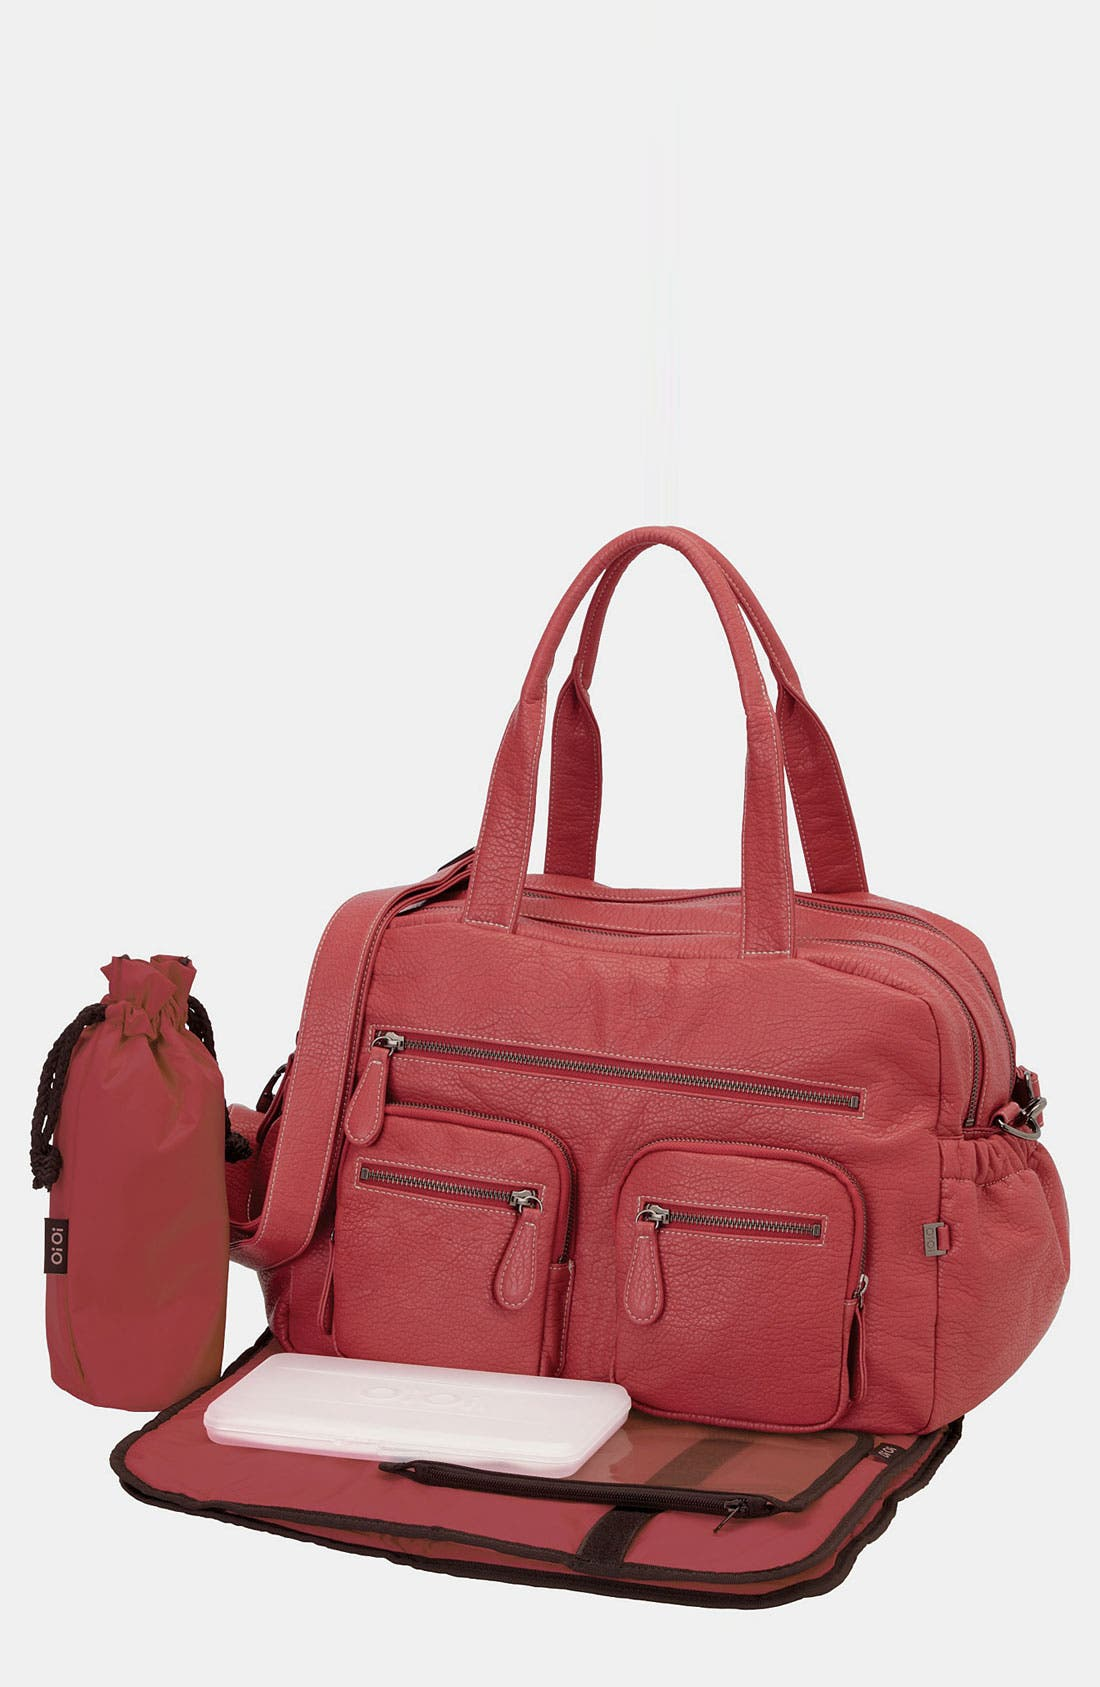 Carryall Diaper Bag,                         Main,                         color, Dark Pink